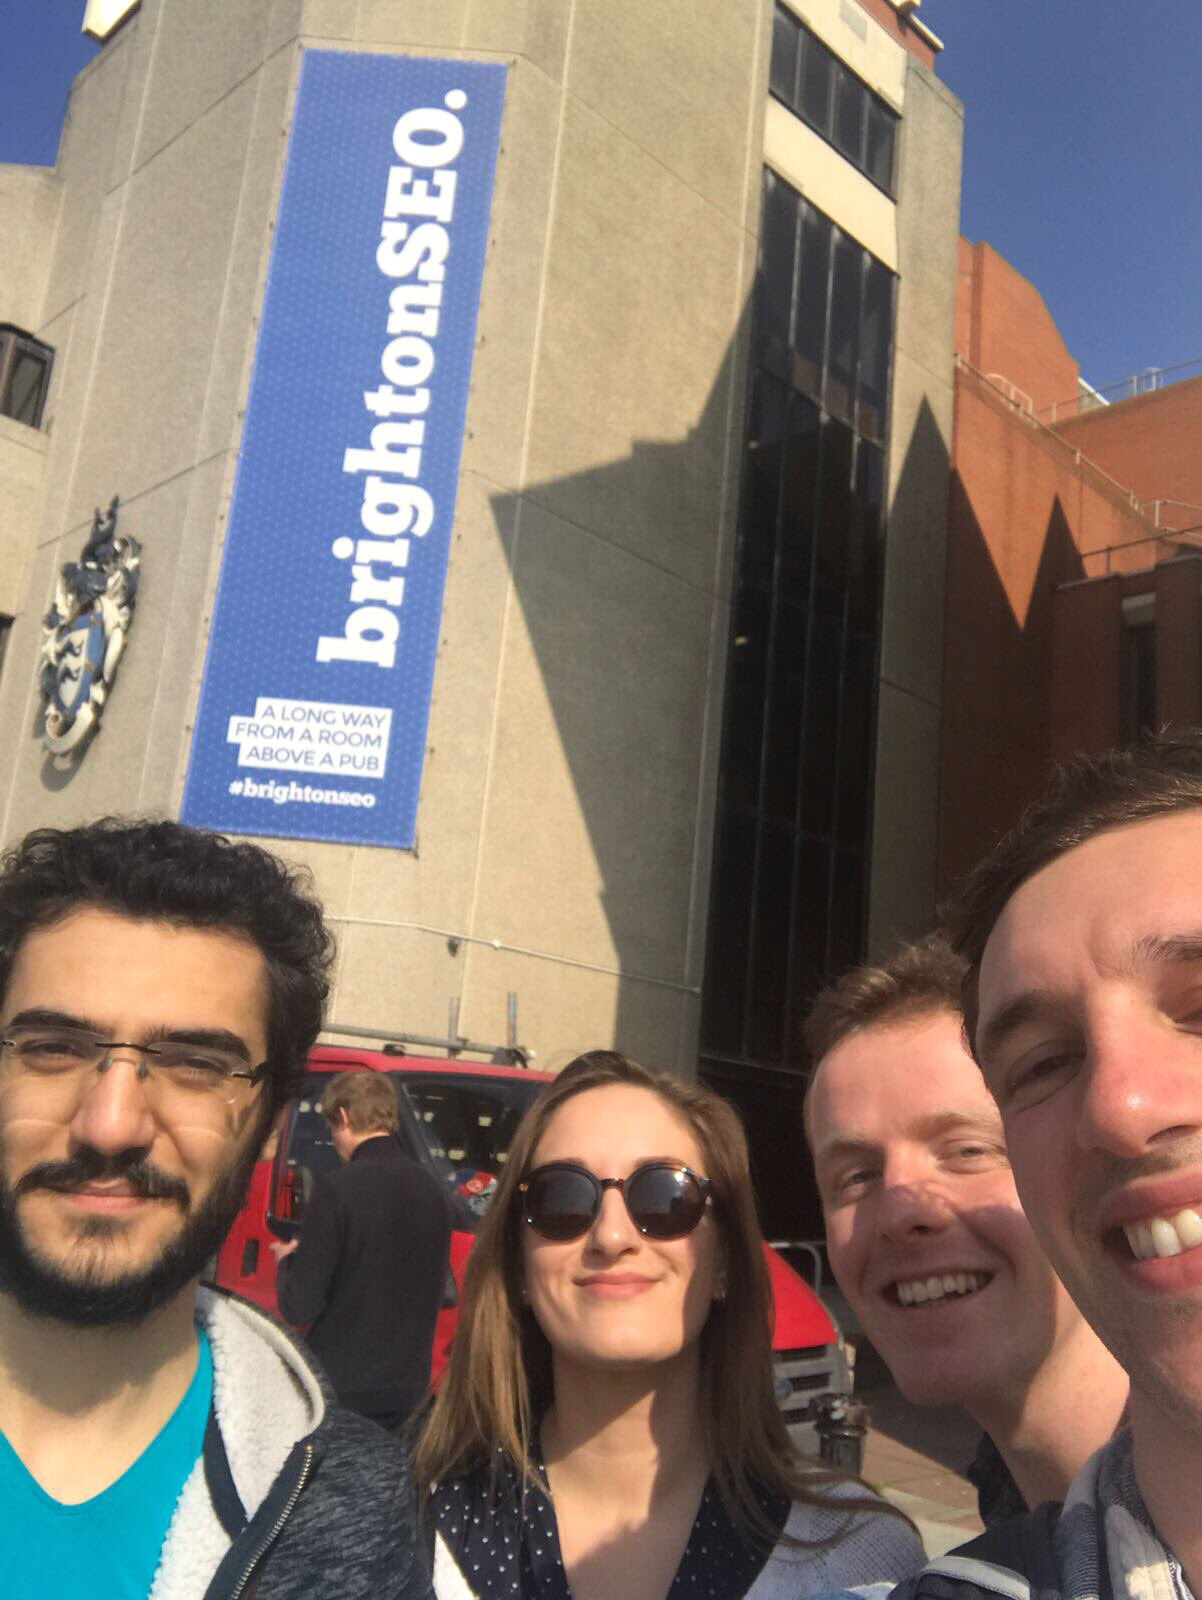 Team PD representing at #BrightonSEO today! Great day for it. https://t.co/l4rlO9gLBQ